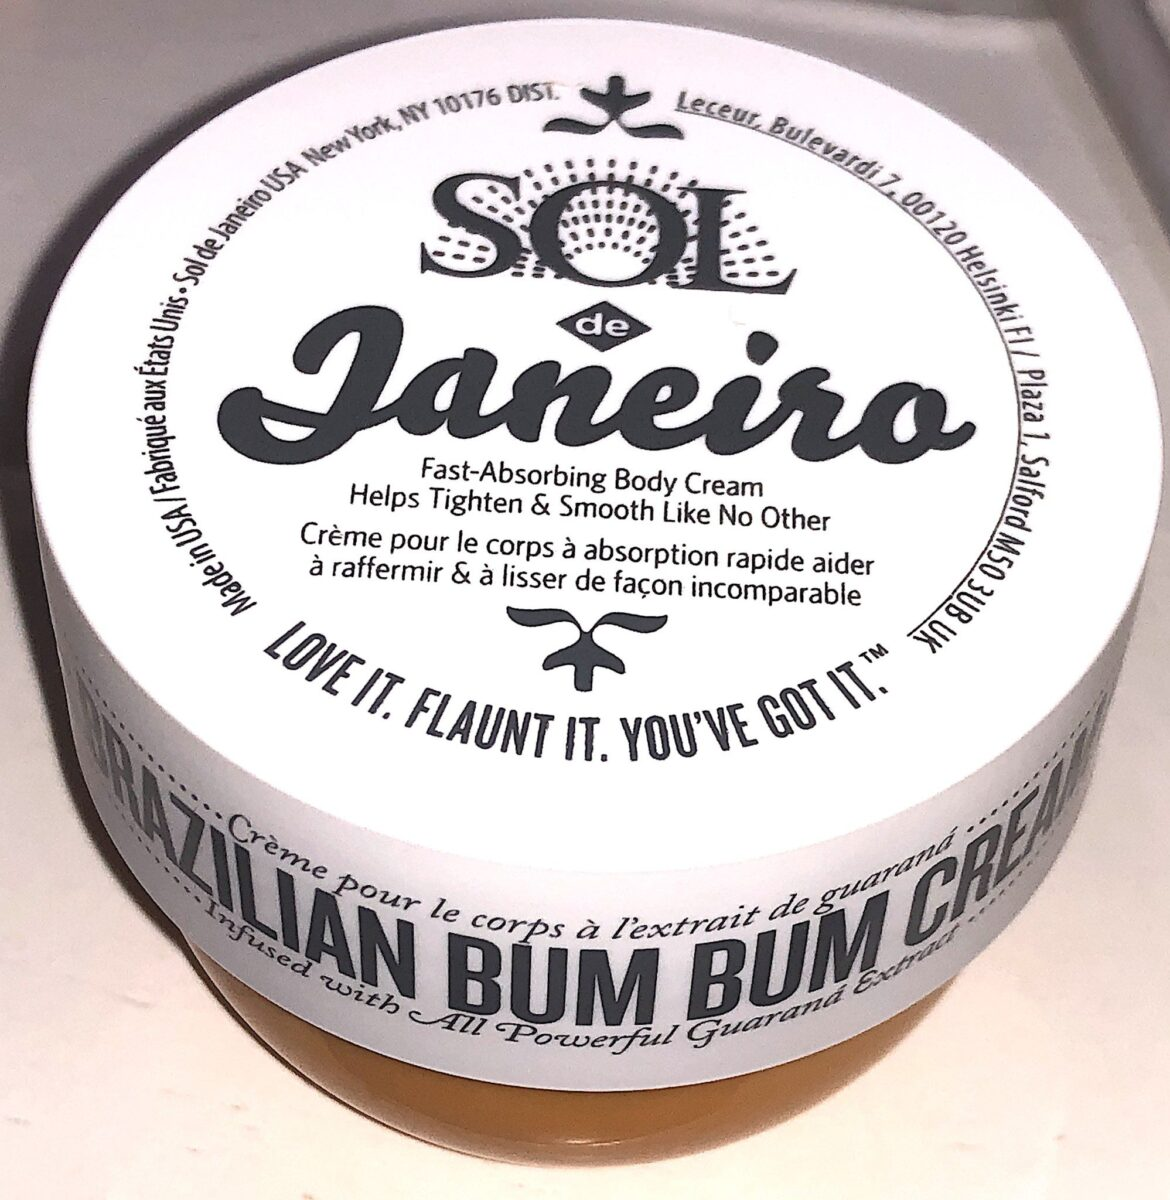 BRAZILIAN BUM BUM CREAM JAR